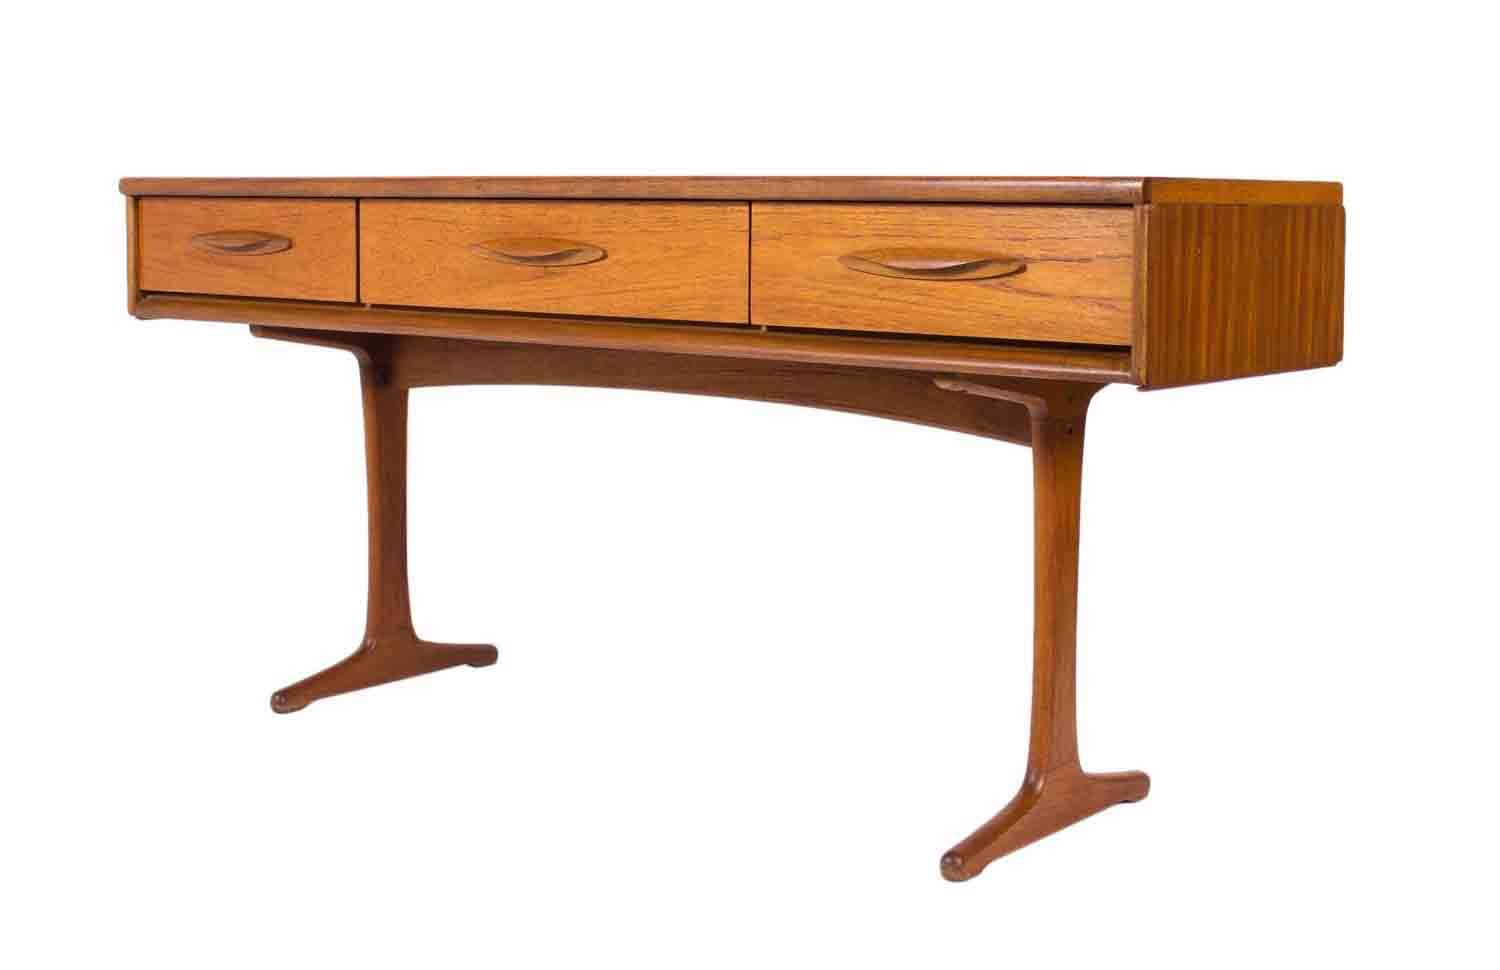 Vintage Teak Console Table From Austinsuite For Sale At Pamono